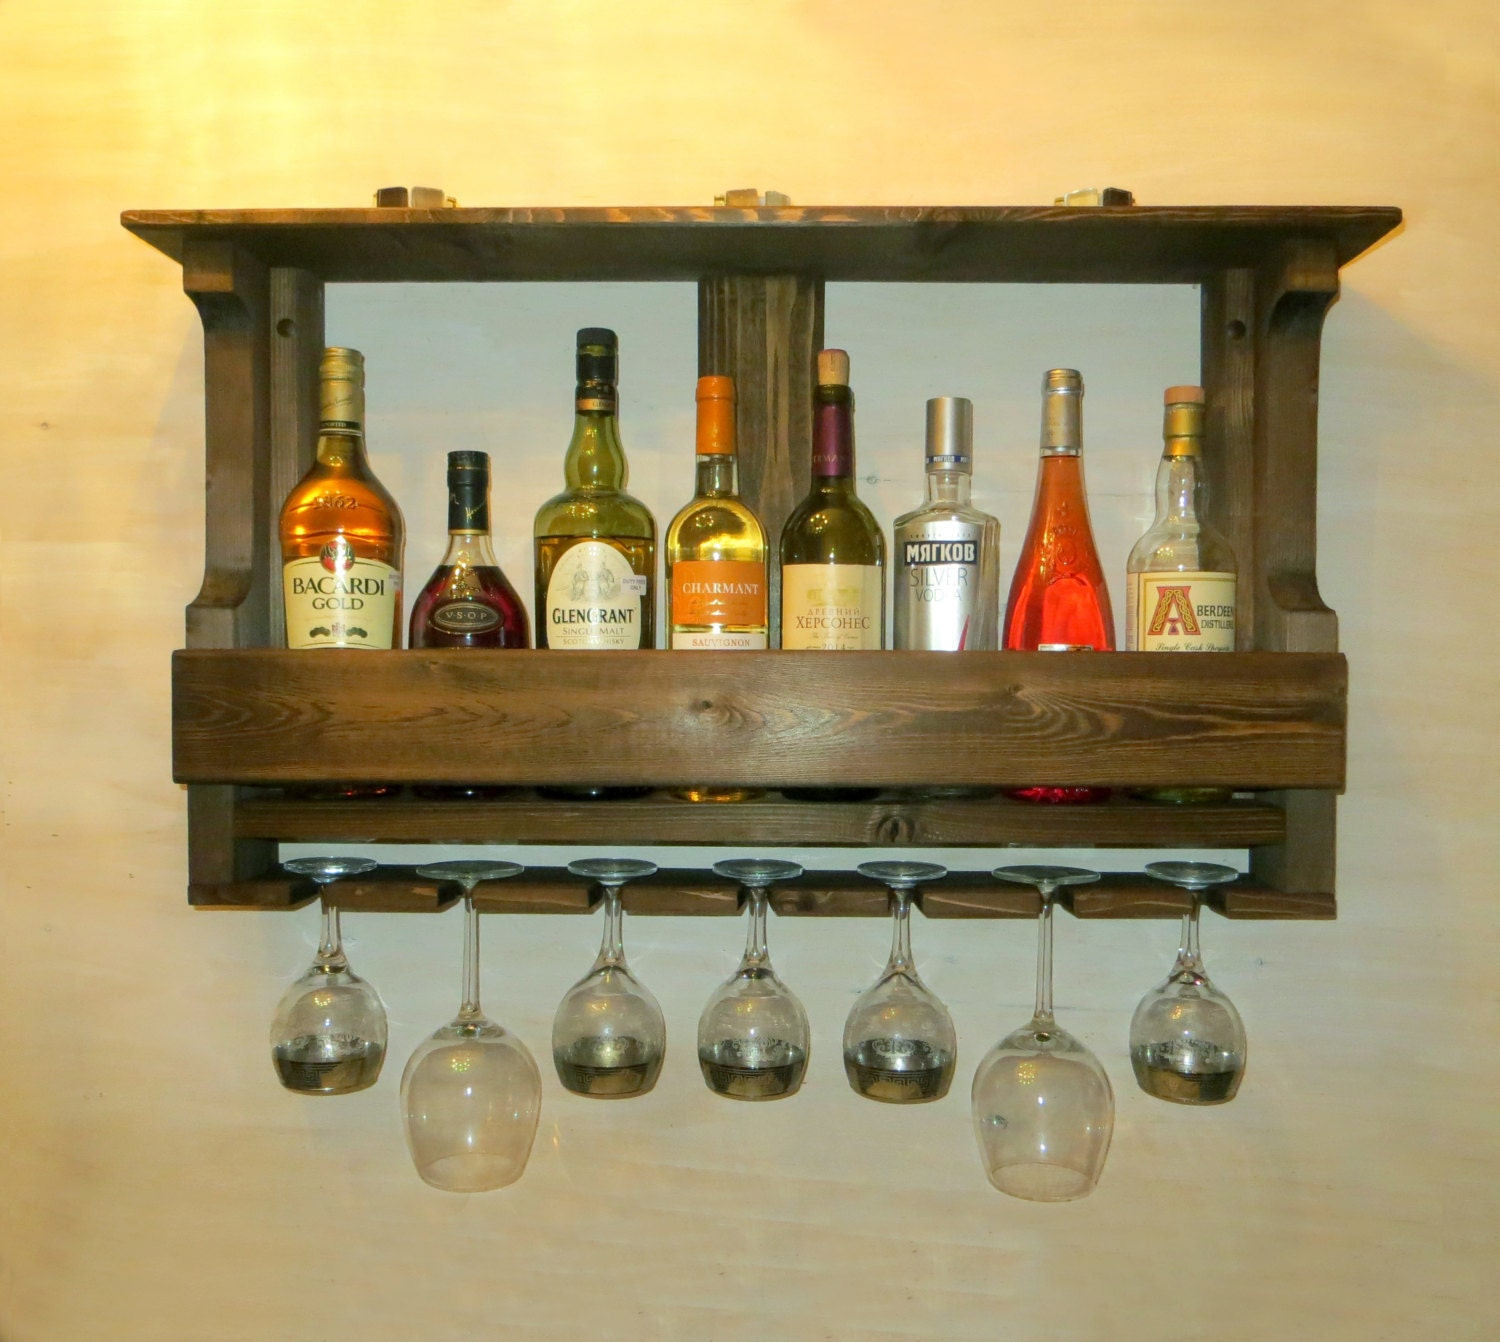 Wooden wine rack kitchen shelf rustic